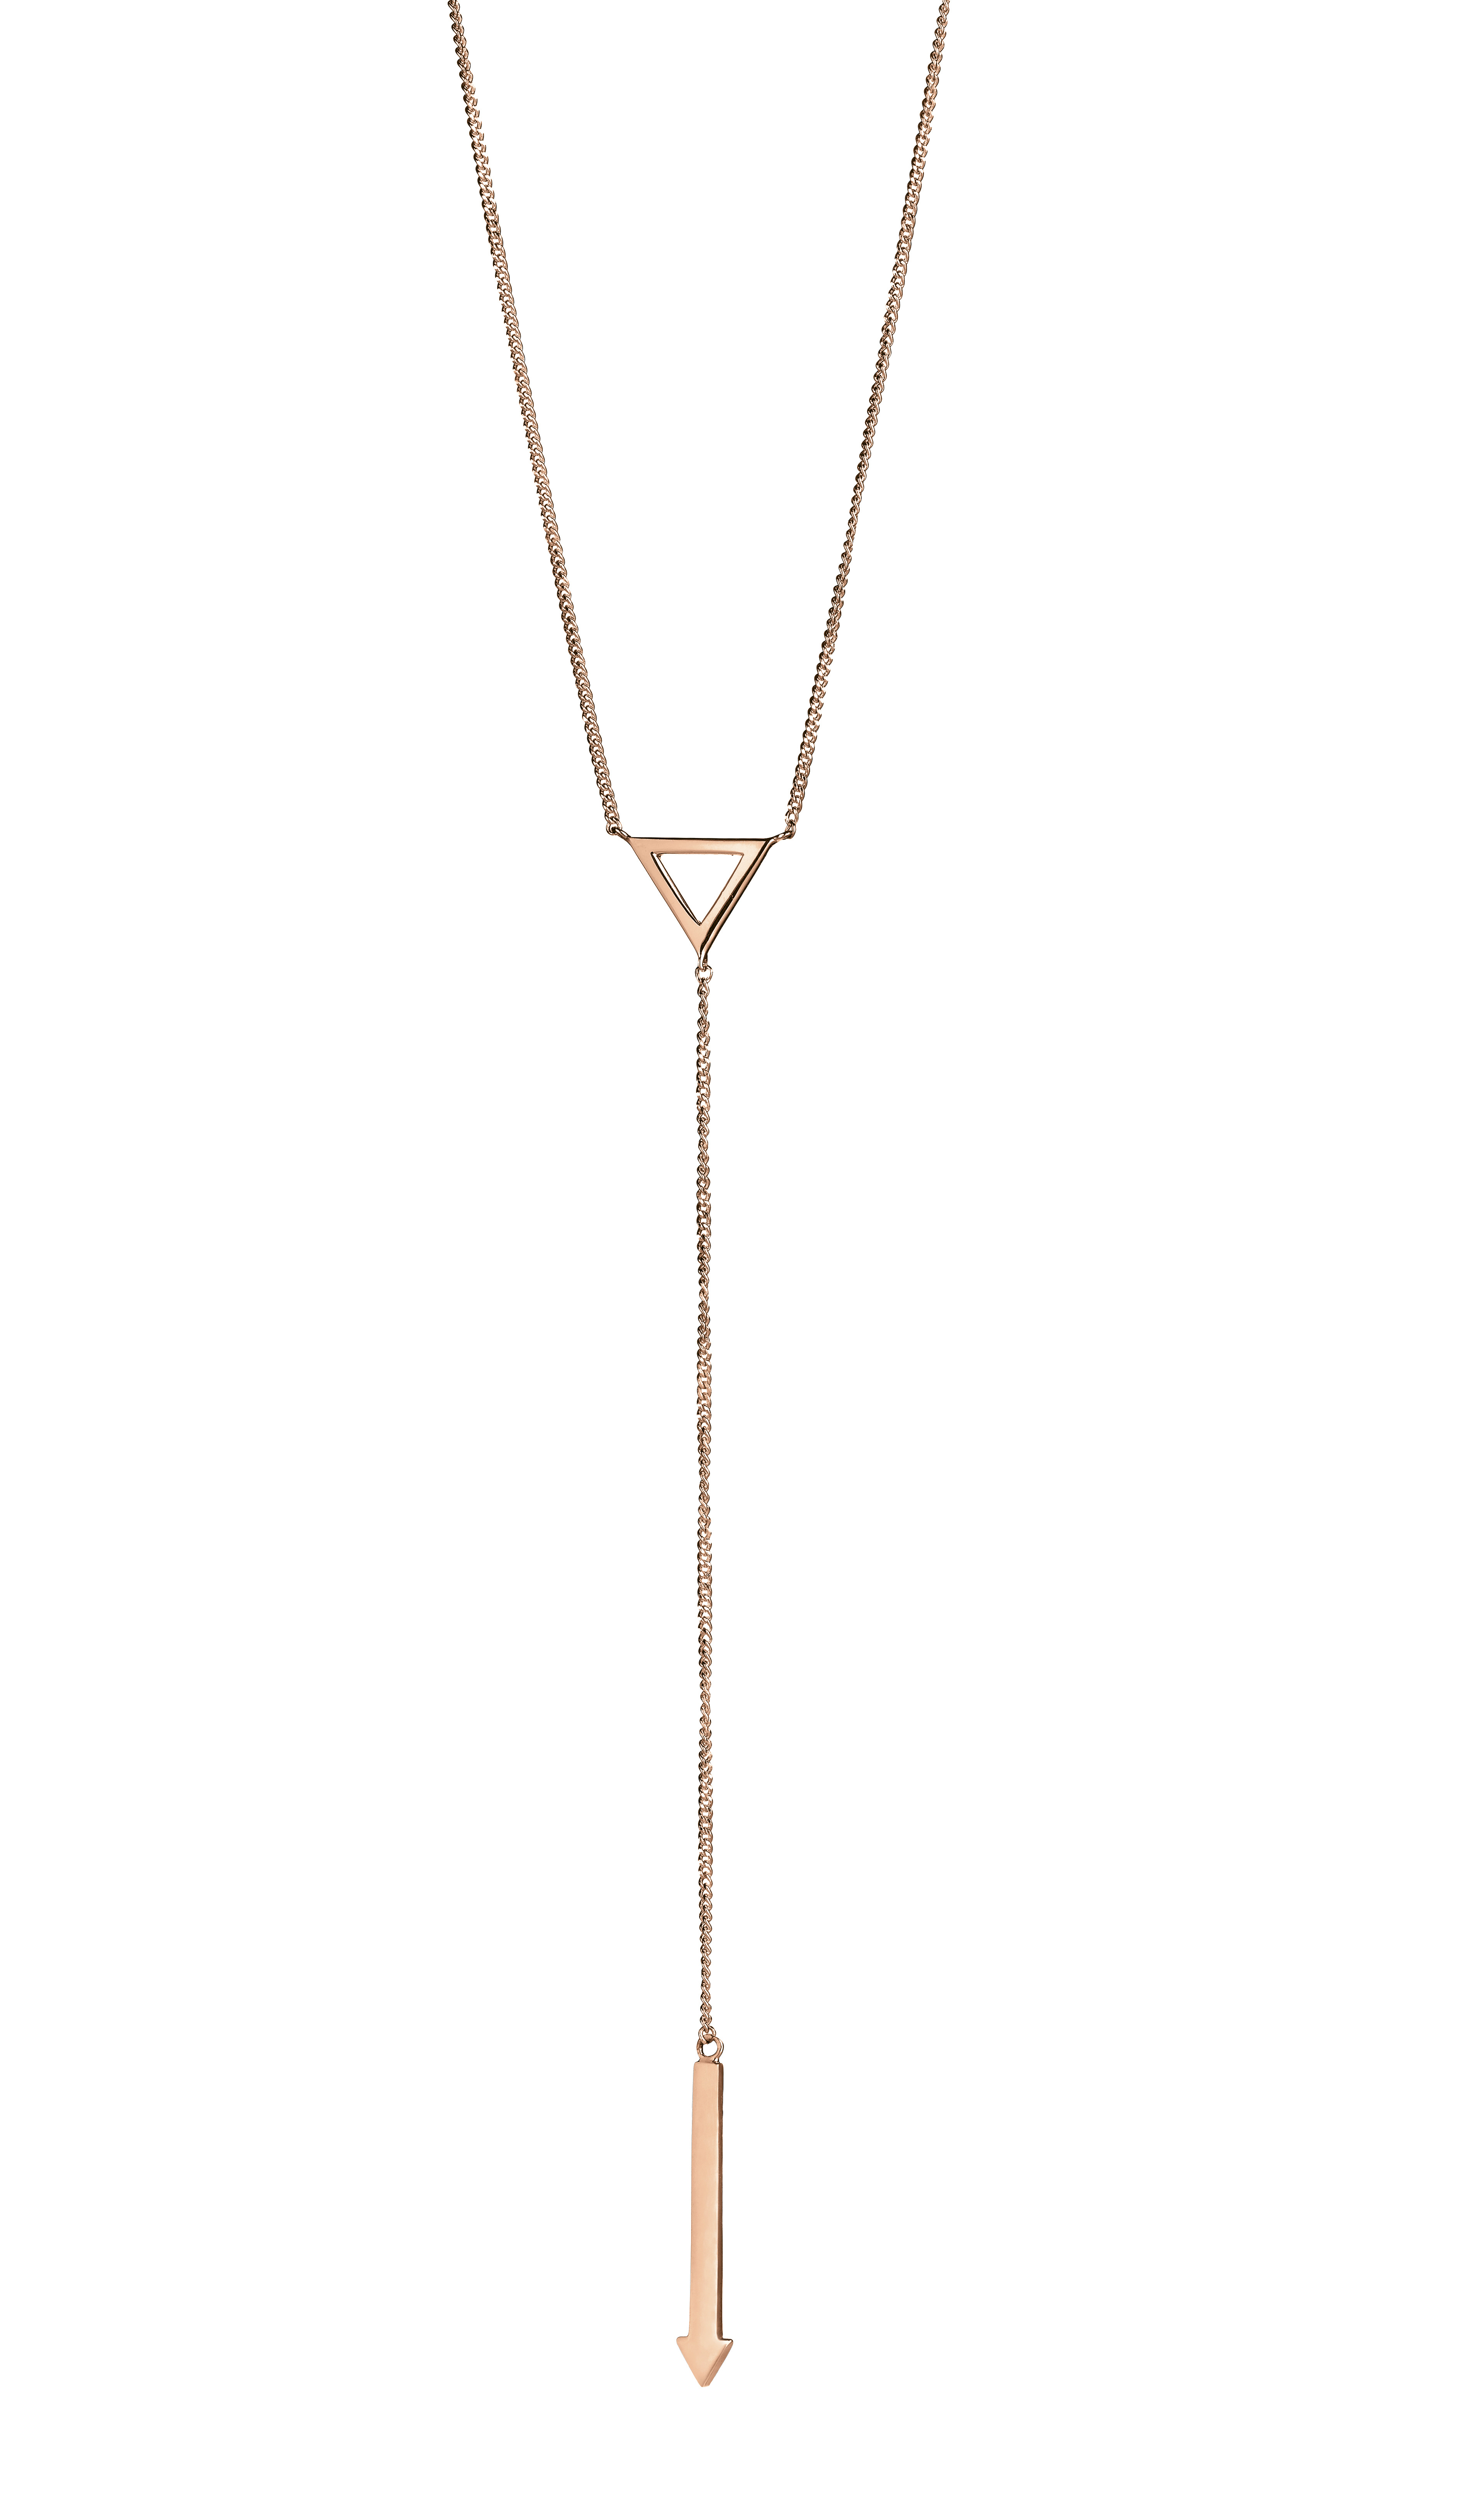 kw299_necklace_rg